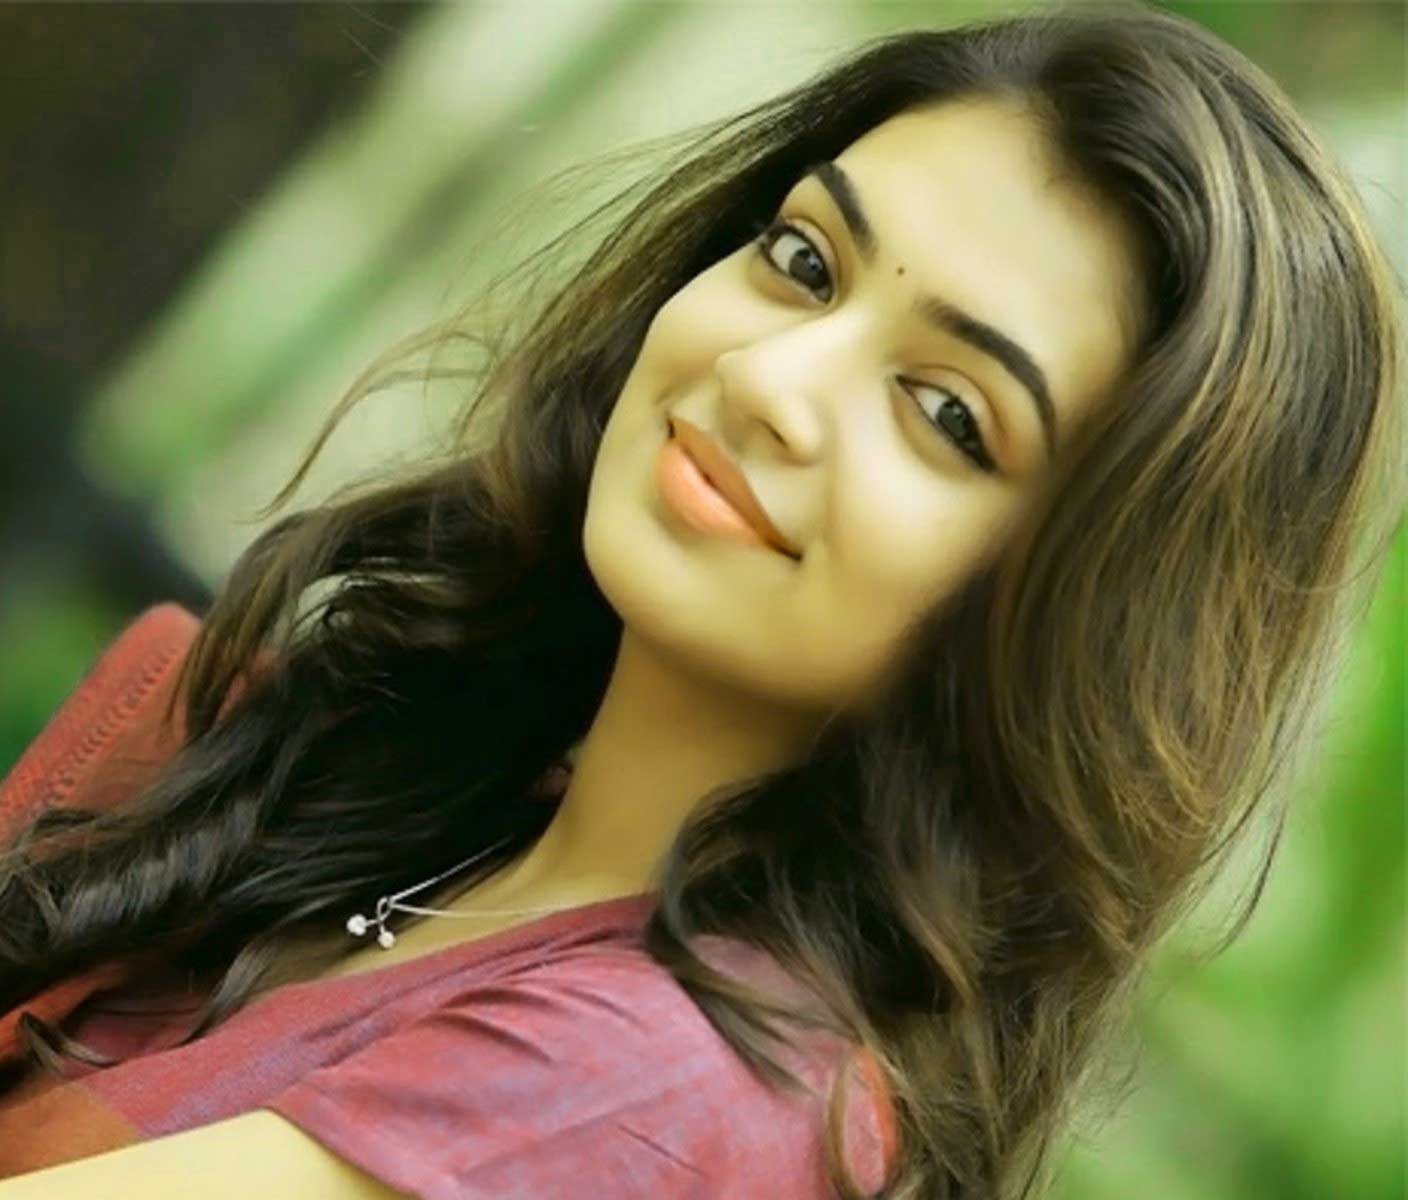 Very Beautiful Girl Images Wallpaper for Whatsapp